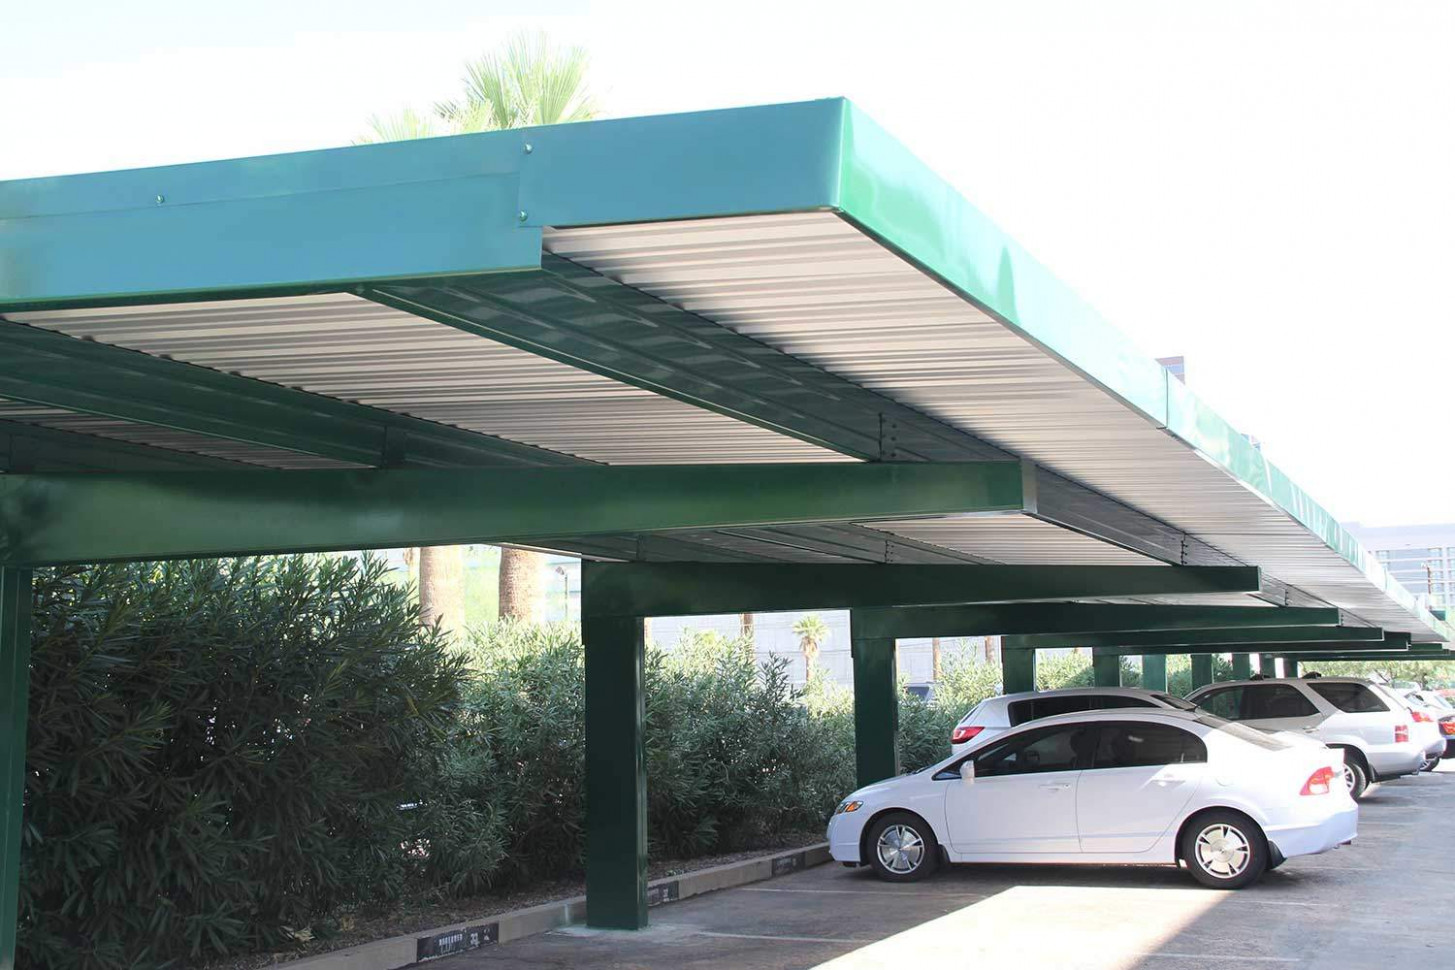 Commercial Carports And Covered Parking Structures Boat Carport Ideas